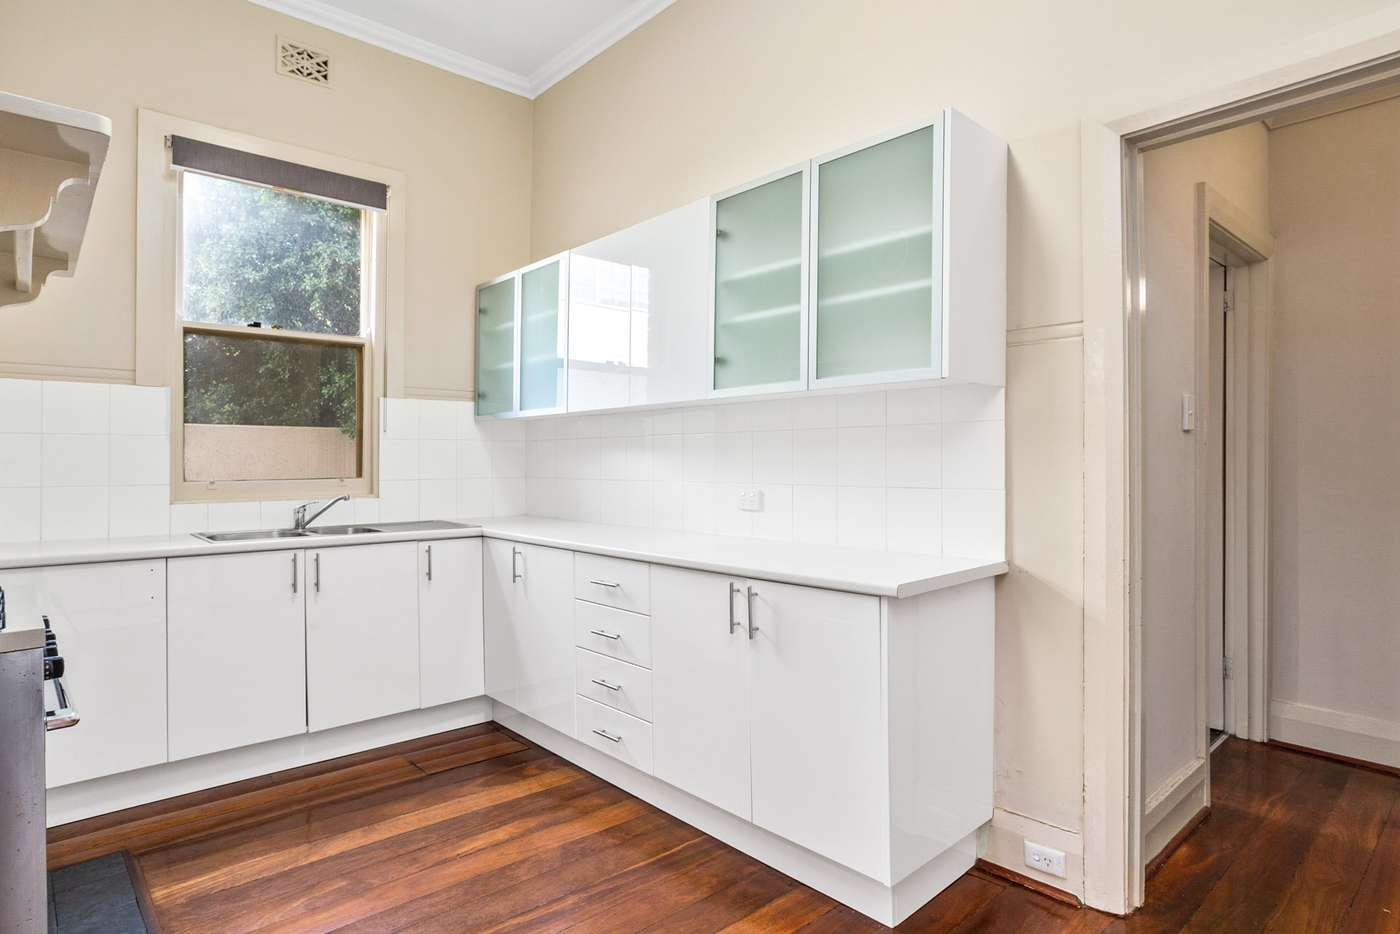 Seventh view of Homely apartment listing, 1/94 Walcott Street, Mount Lawley WA 6050